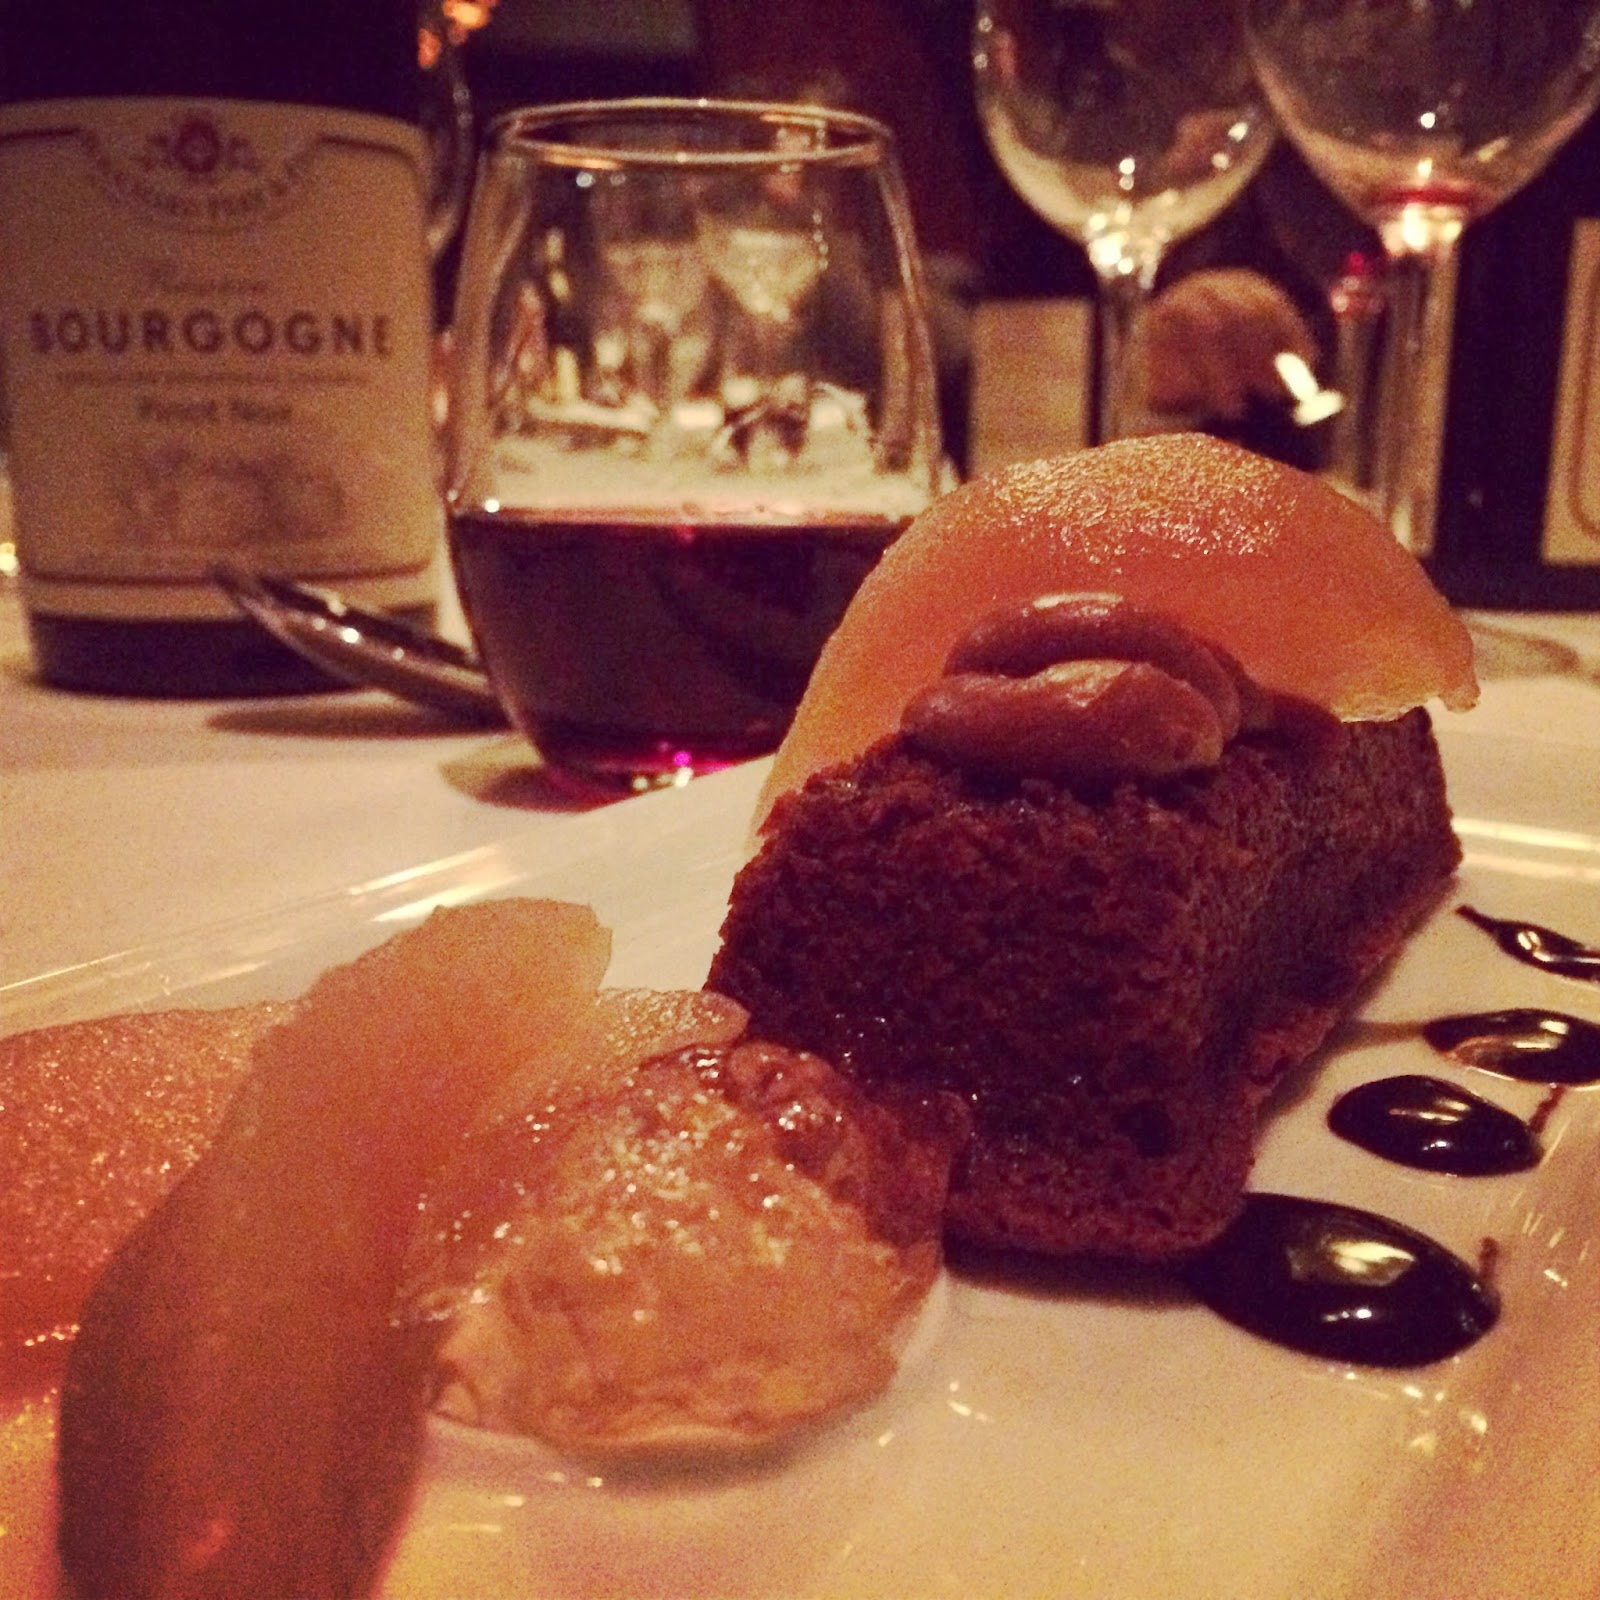 Dessert: Chocolate cake with hazelnut creme and poached pears